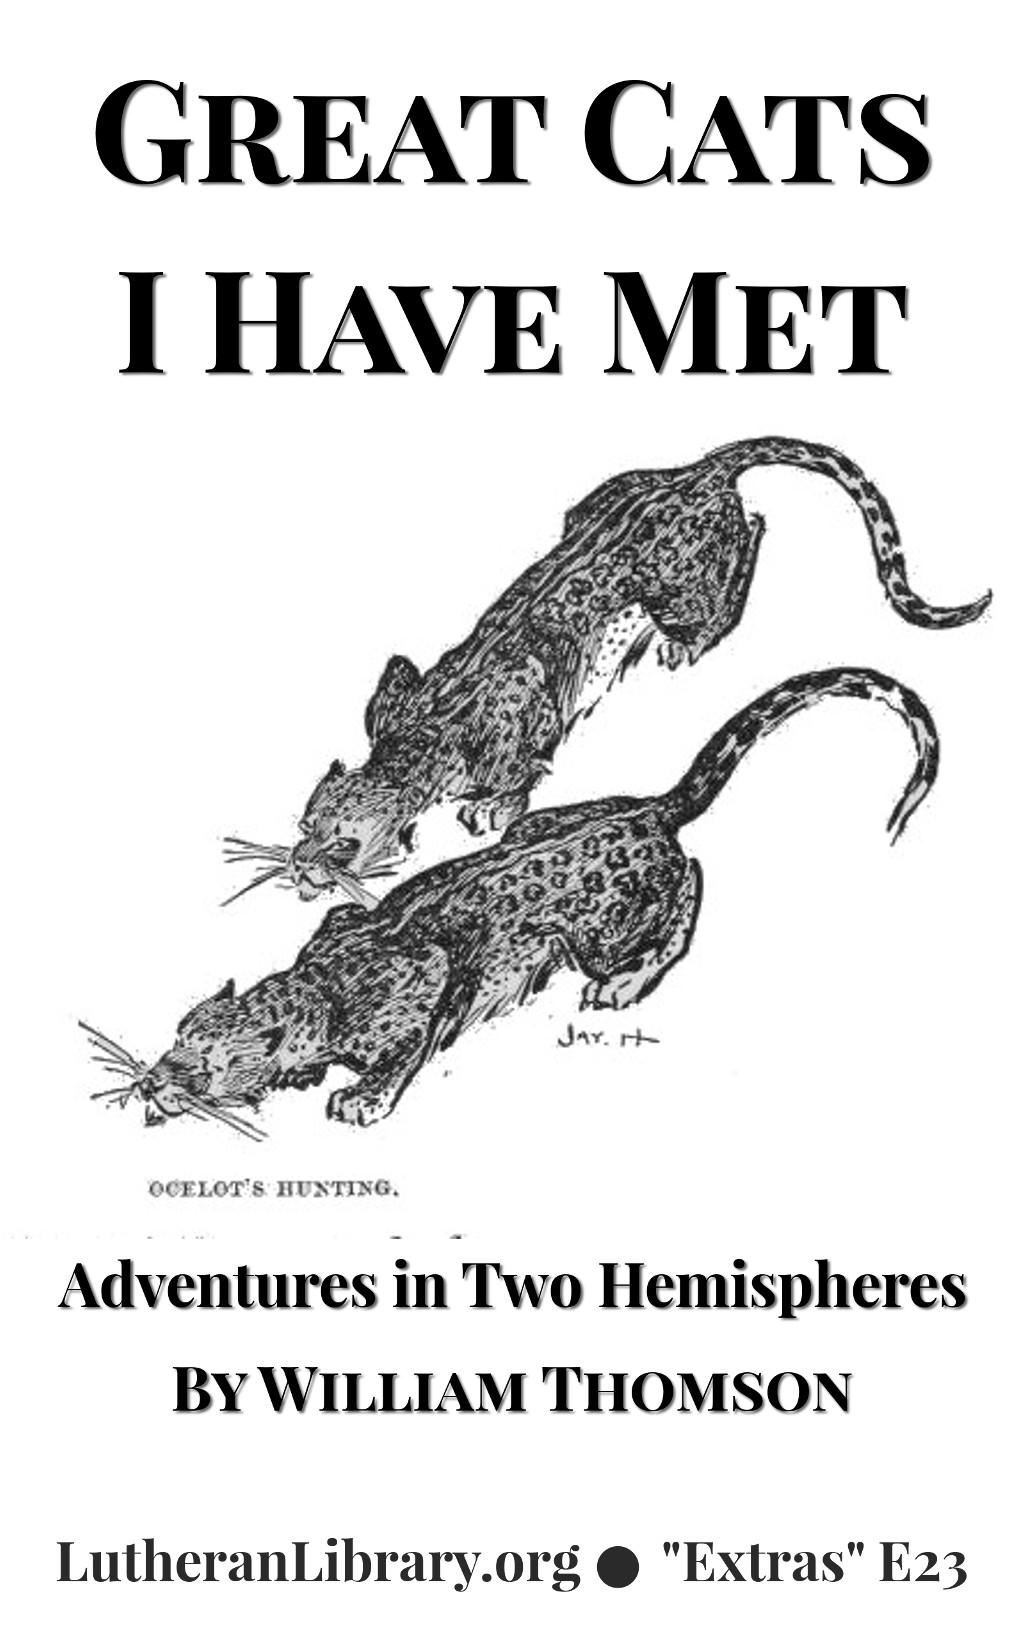 Great Cats I Have Met: Adventures in Two Hemispheres by William Thomson